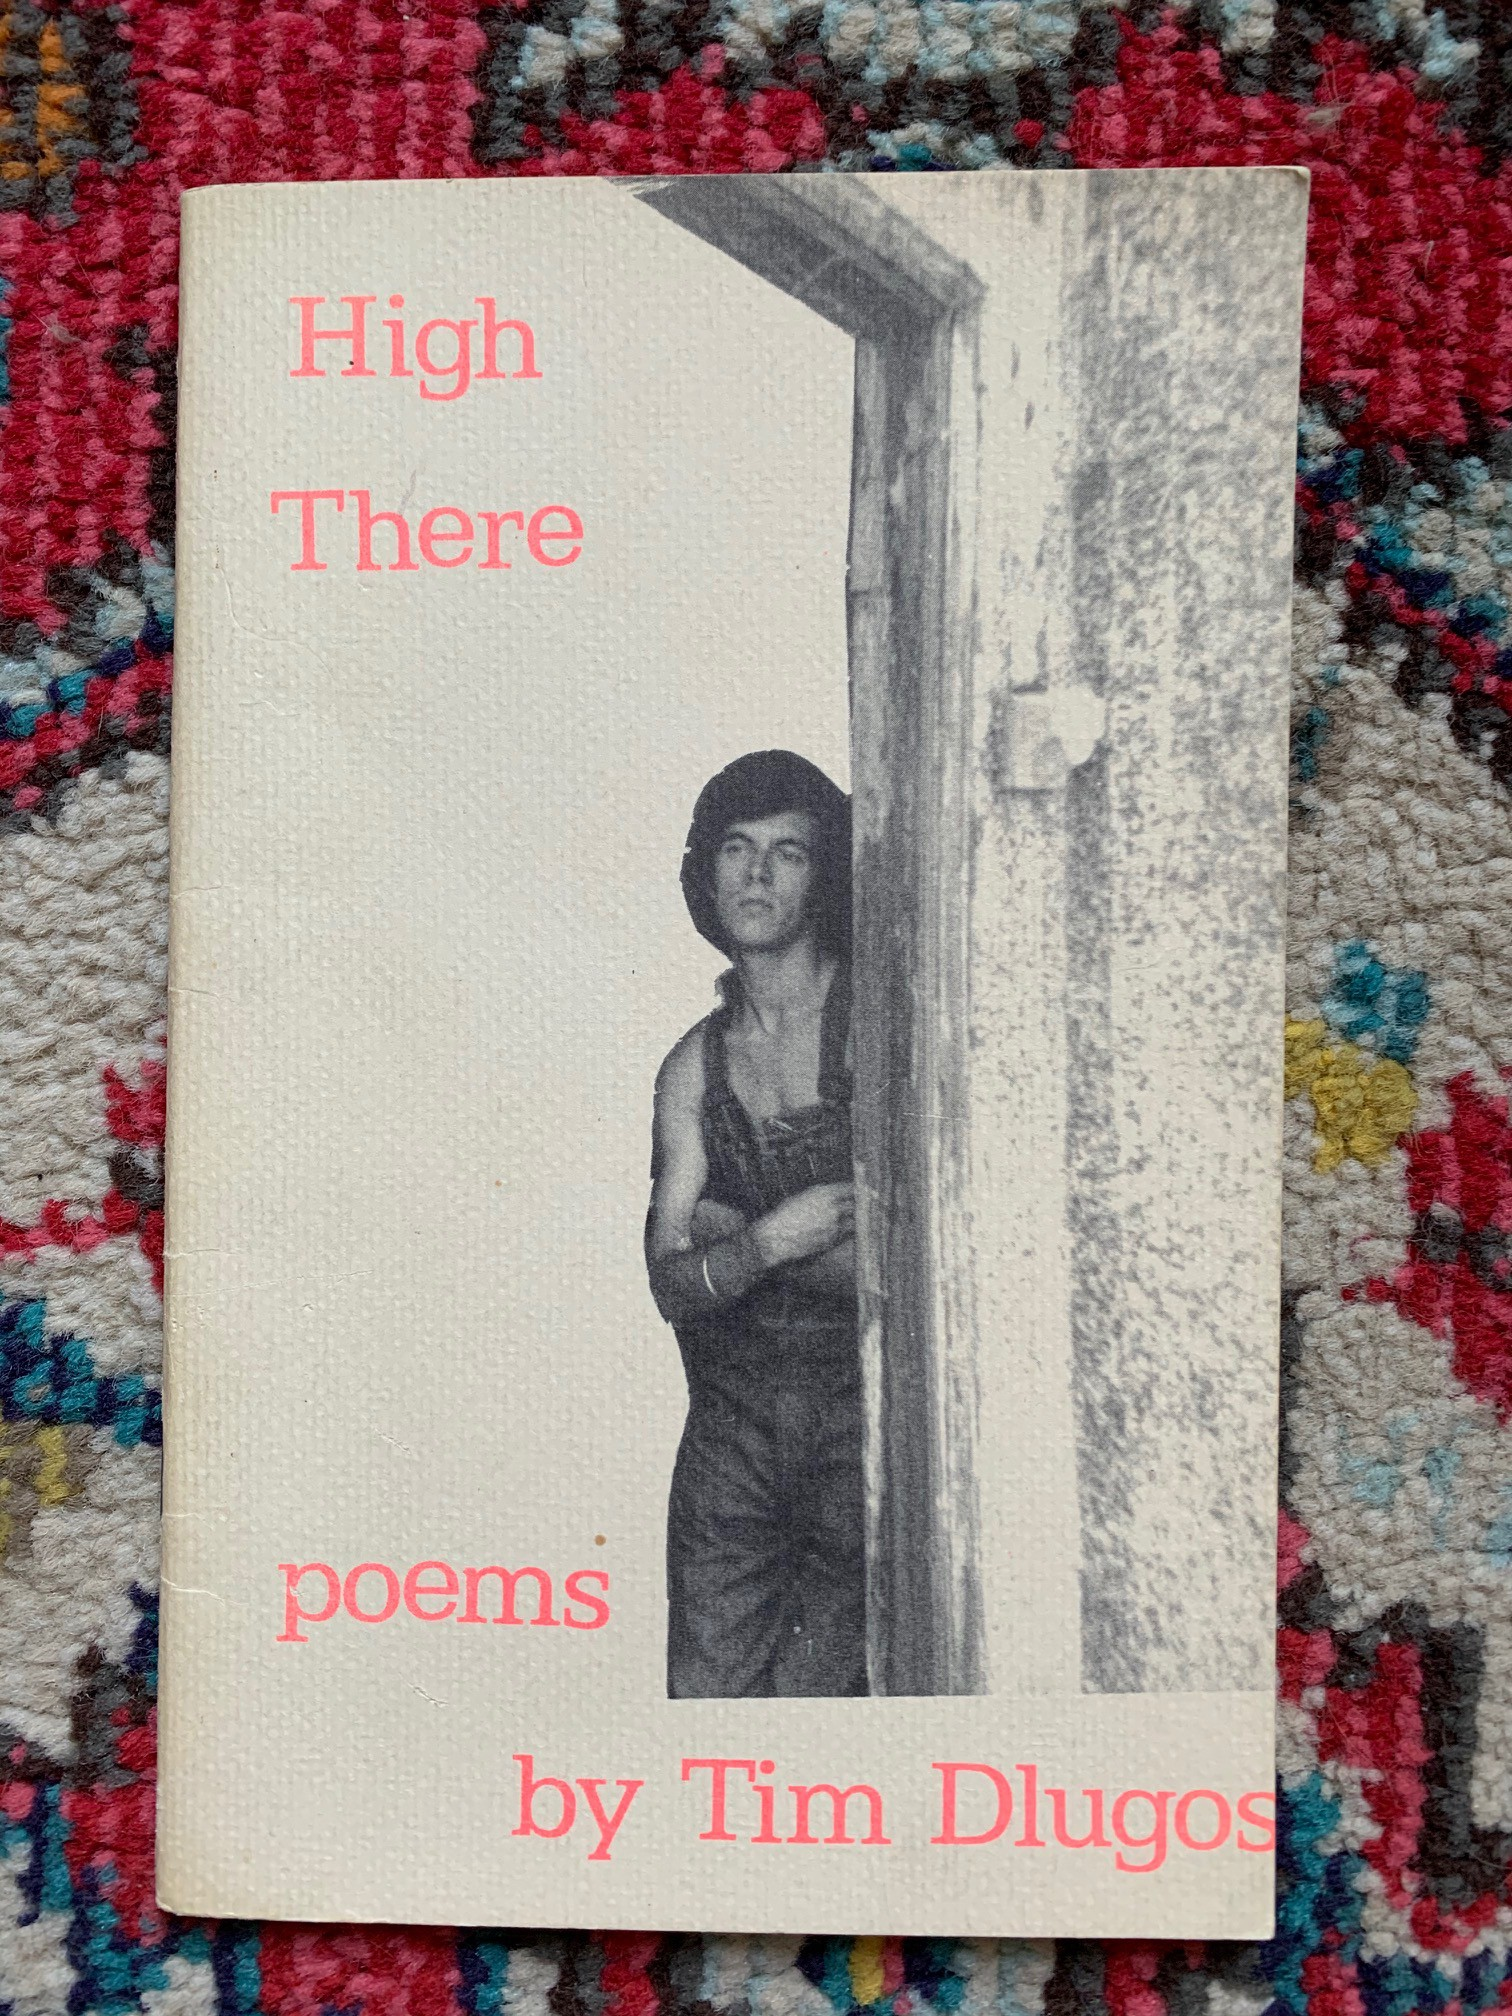 Photo of Tim Dlugos on the cover of his book High There against a colorful carpet background.